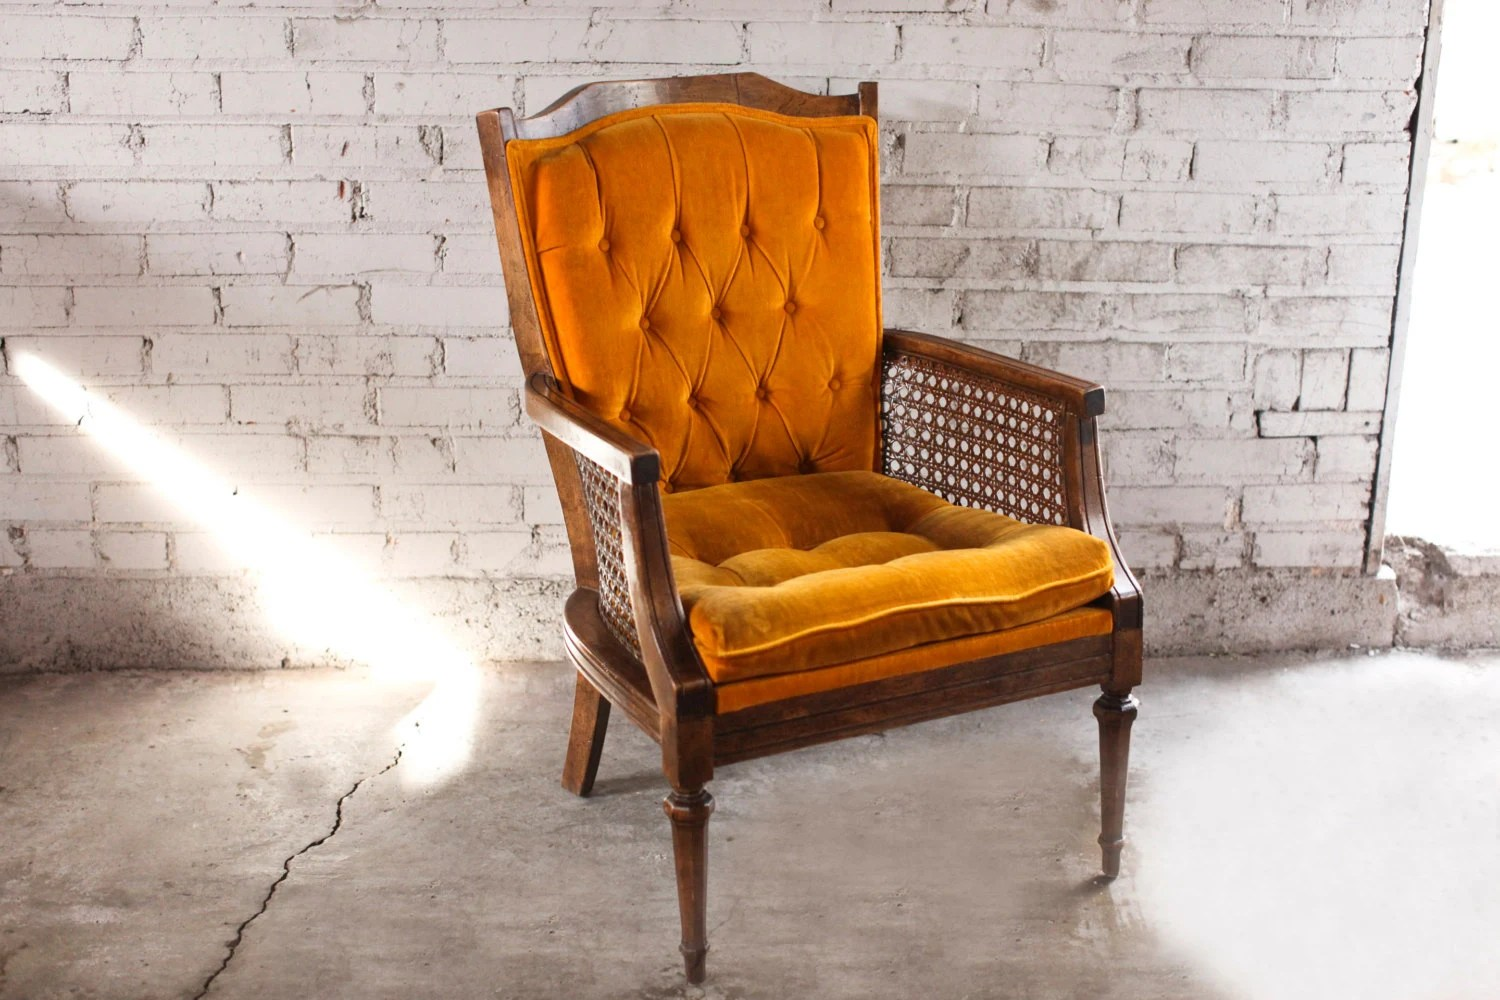 Vintage Orange Velvet Tufted Cane Accent Chair